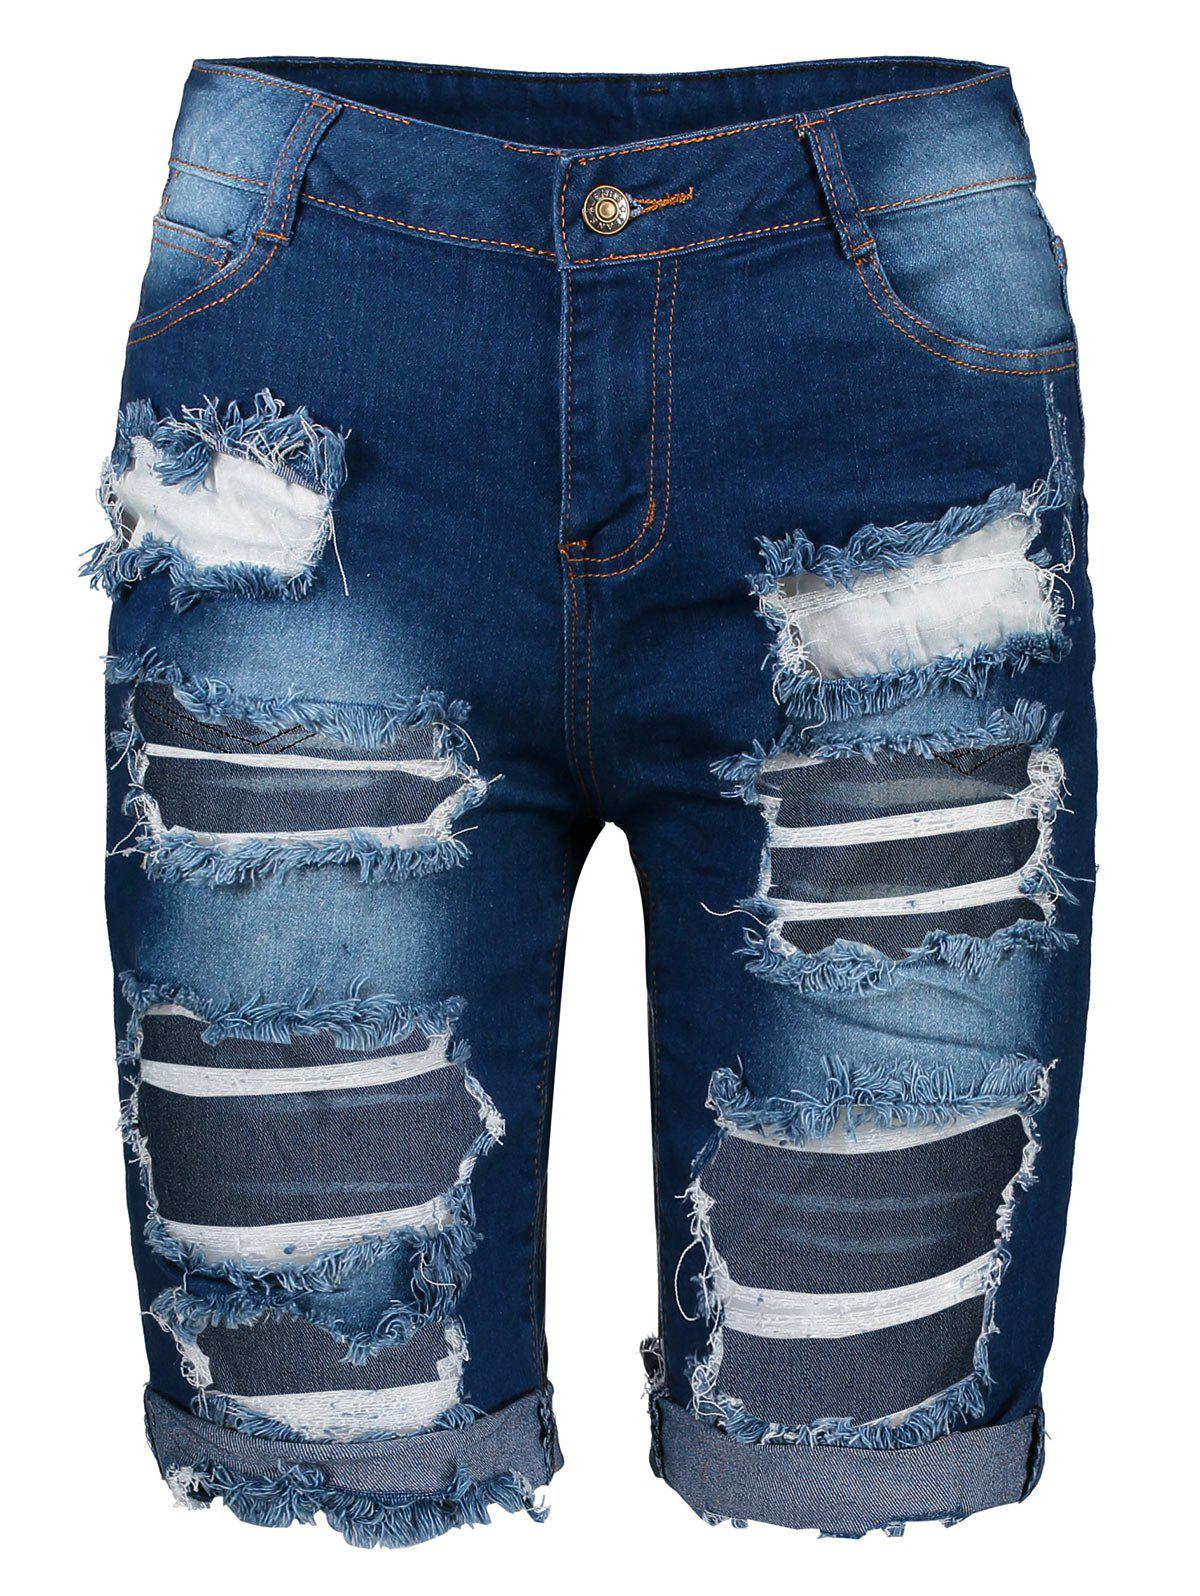 Ripped Denim Knee Length Bermuda ShortsWOMEN<br><br>Size: 3XL; Color: DEEP BLUE; Style: Fashion; Length: Knee-Length; Material: Jeans; Fit Type: Skinny; Waist Type: High; Closure Type: Zipper Fly; Front Style: Flat; Pattern Type: Patchwork; Elasticity: Elastic; Weight: 0.3310kg; Package Contents: 1 x Shorts;